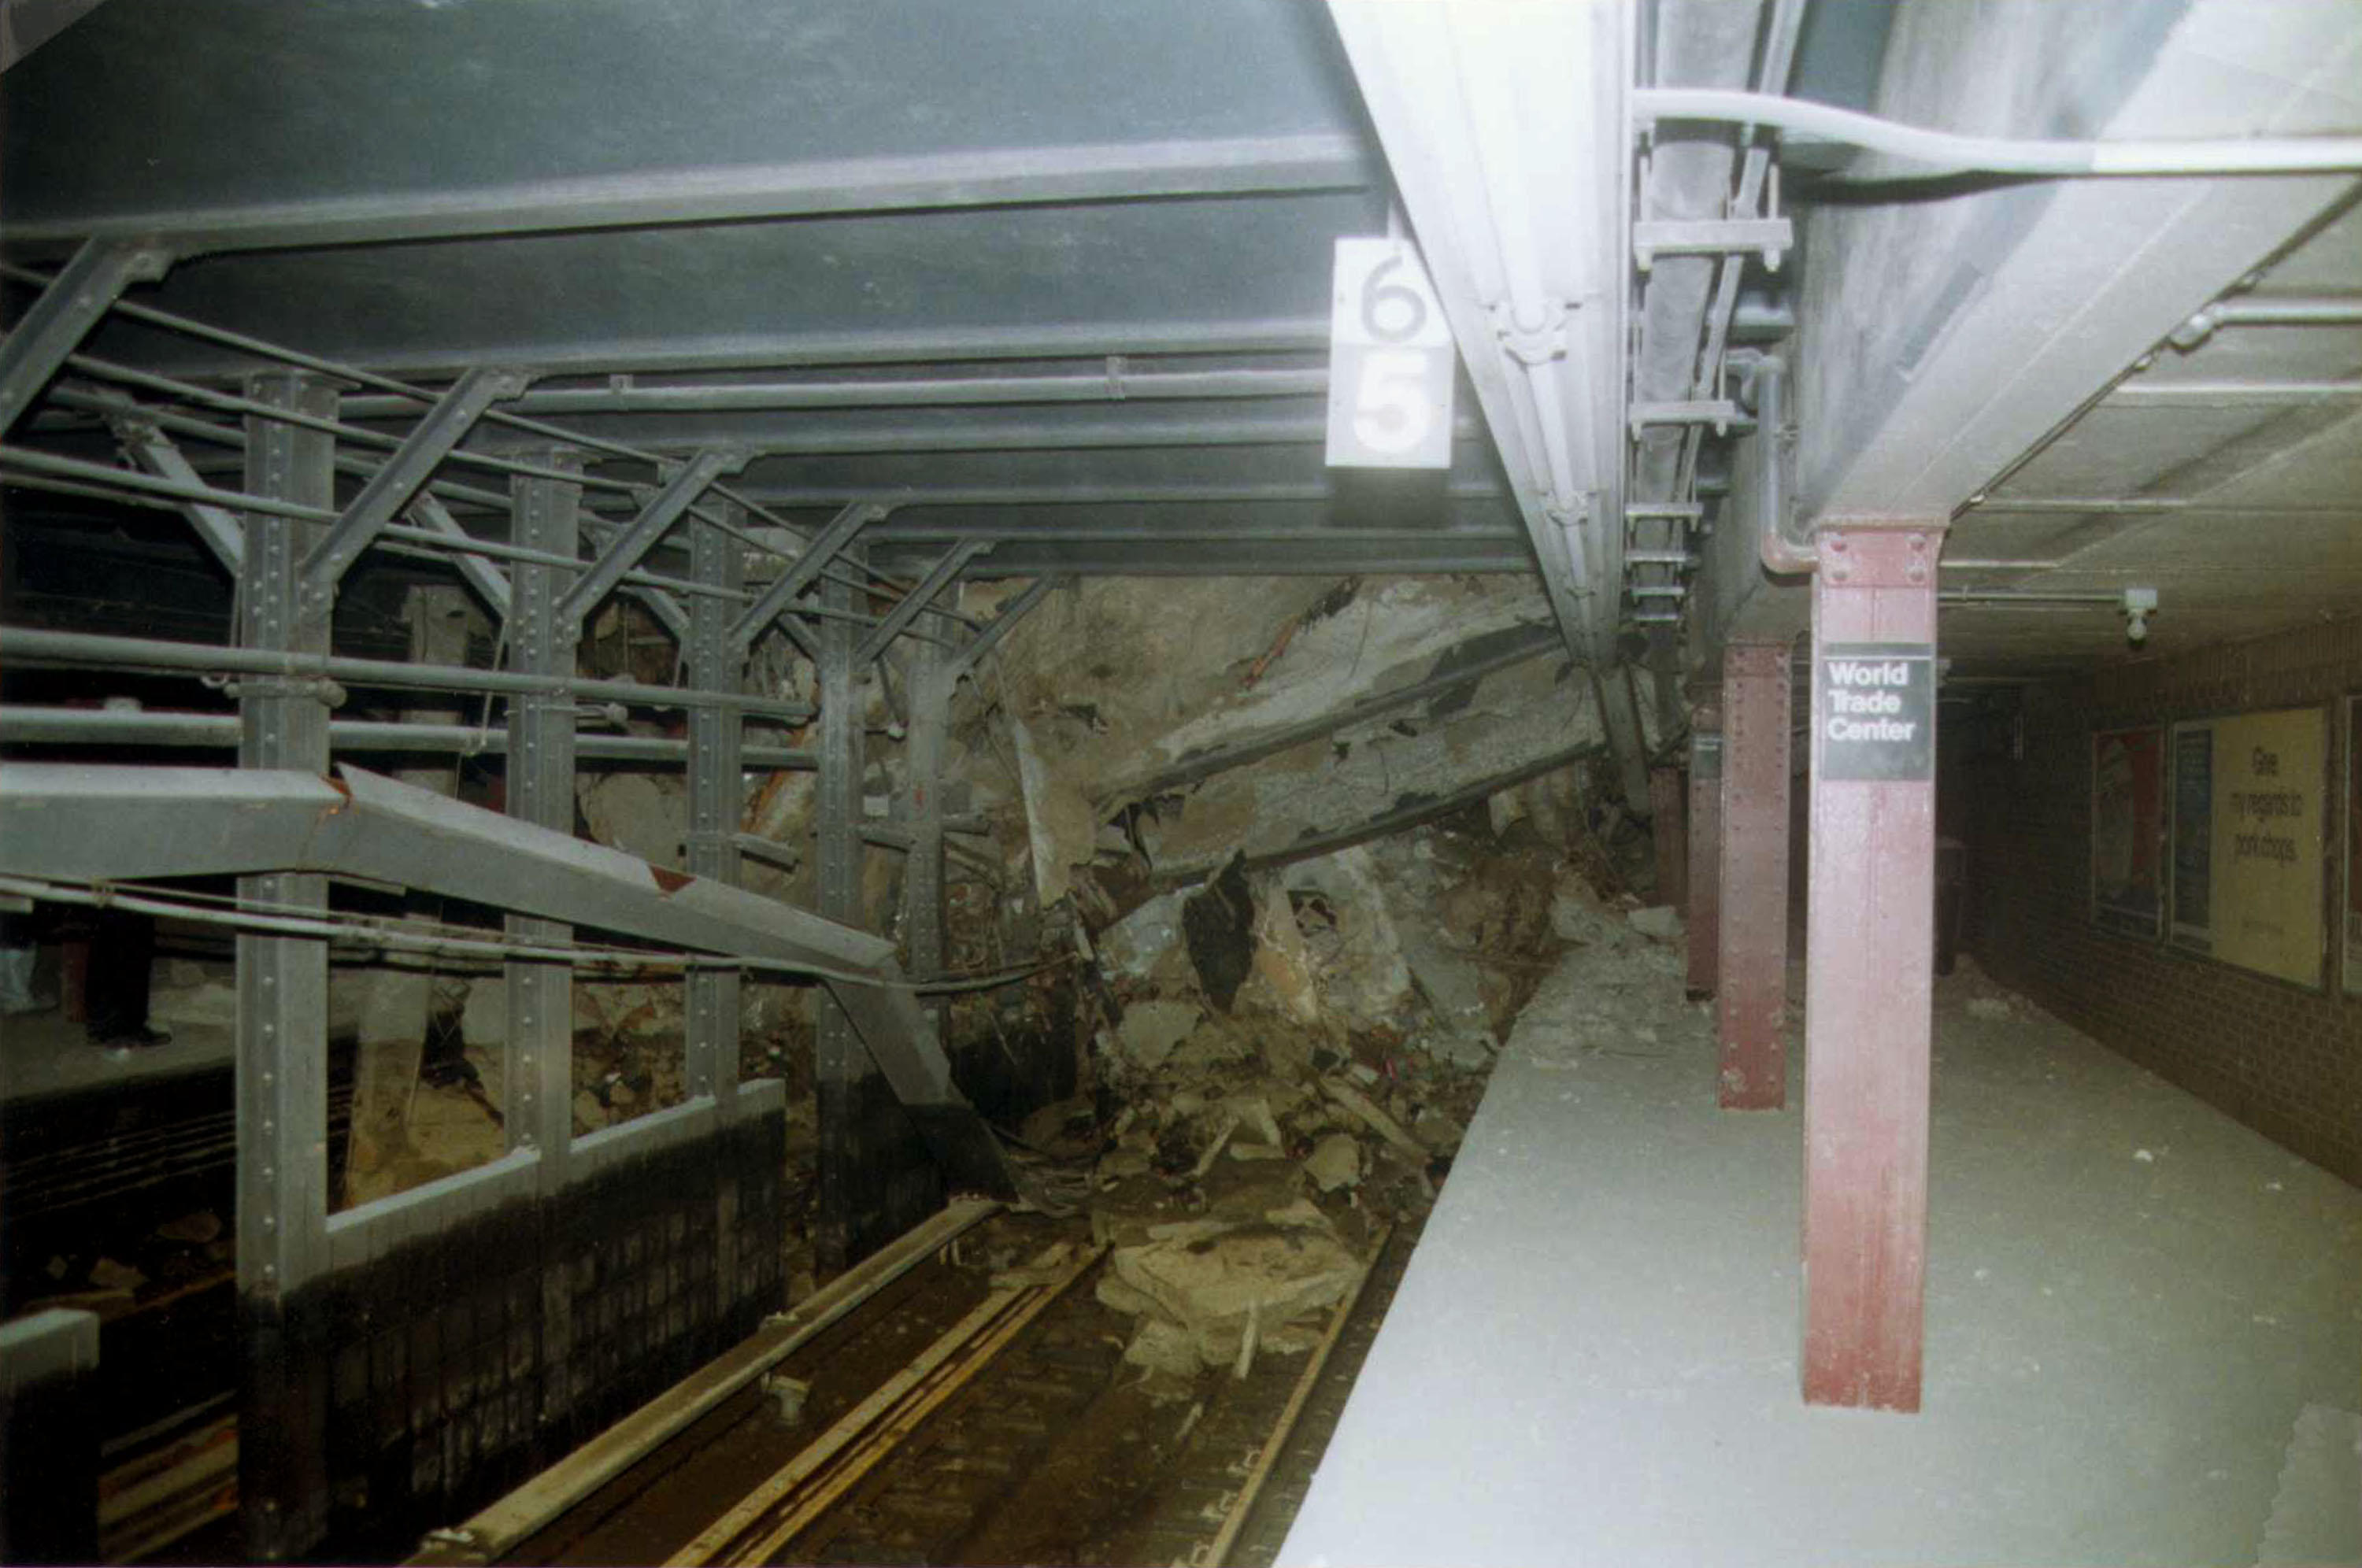 Post 911 Subway Map.Nyc Subway Station At Site Of 9 11 Attack Reopens After Nearly 2